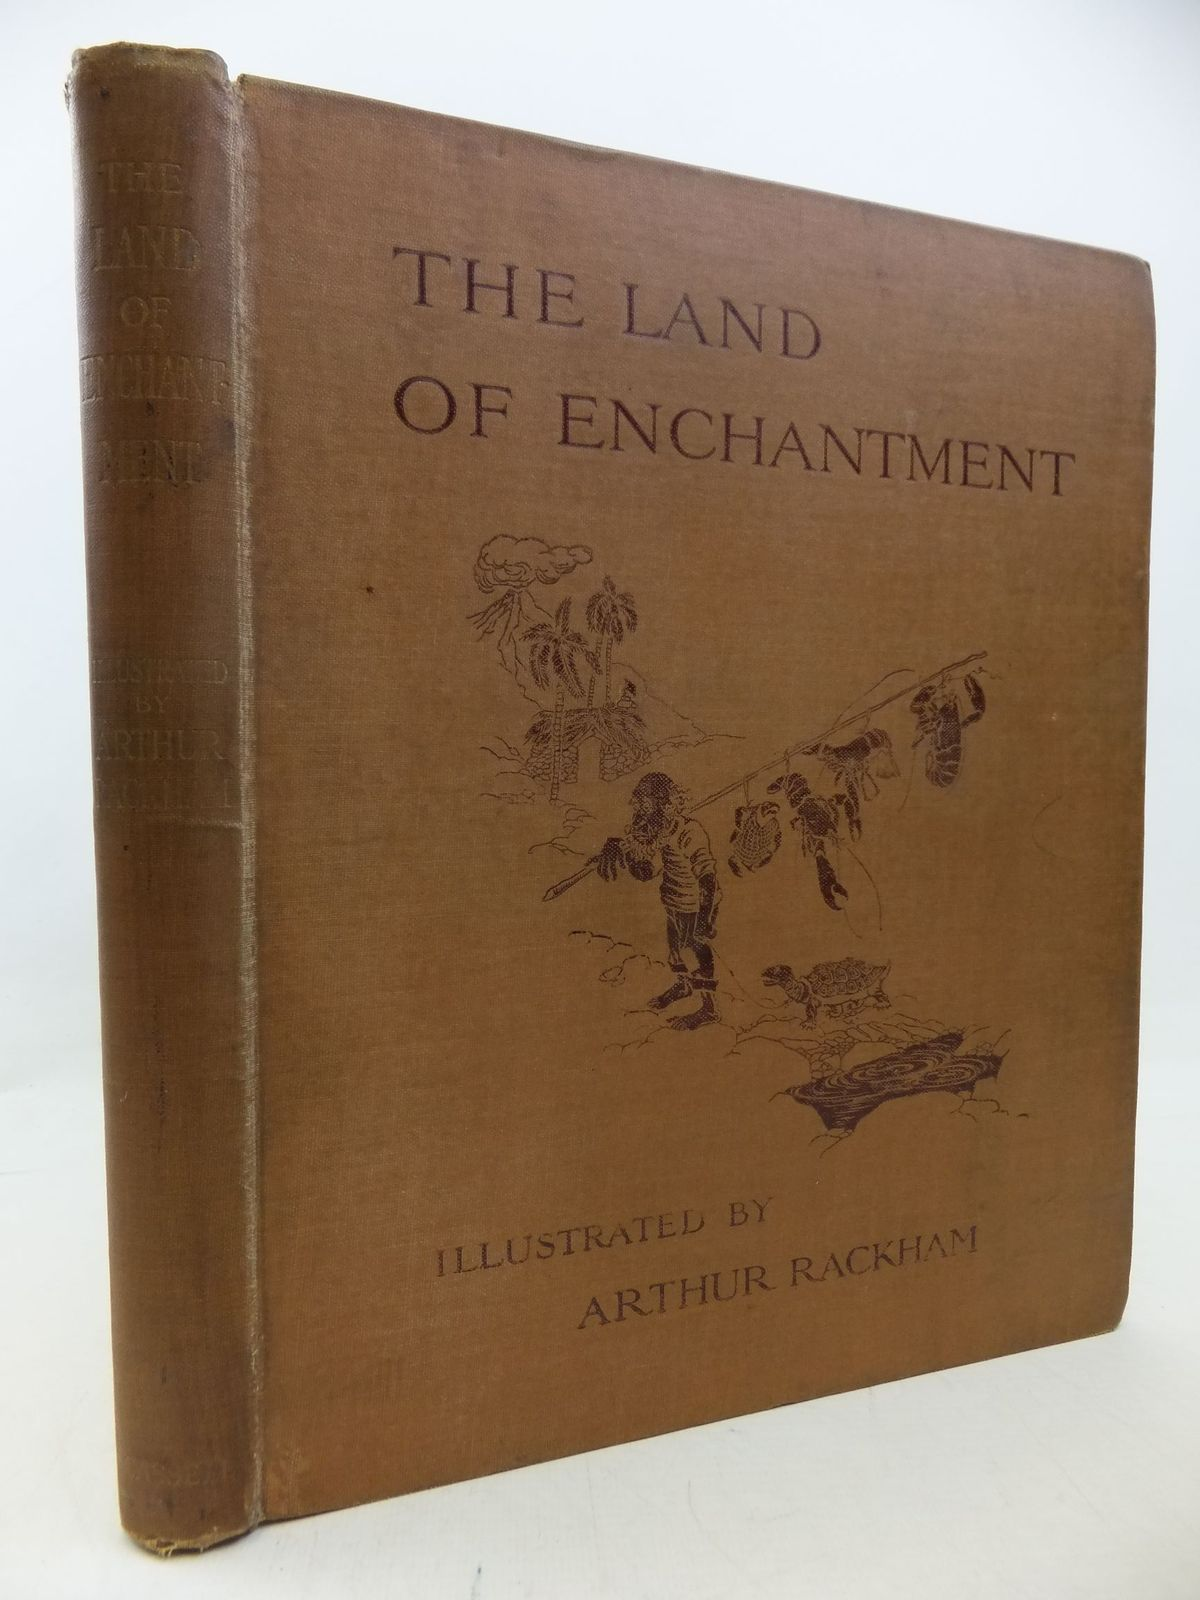 Photo of THE LAND OF ENCHANTMENT written by Bonser, A.E. Woolf, Sidney Bucheim, E.S. illustrated by Rackham, Arthur published by Cassell & Co. Ltd. (STOCK CODE: 1710415)  for sale by Stella & Rose's Books